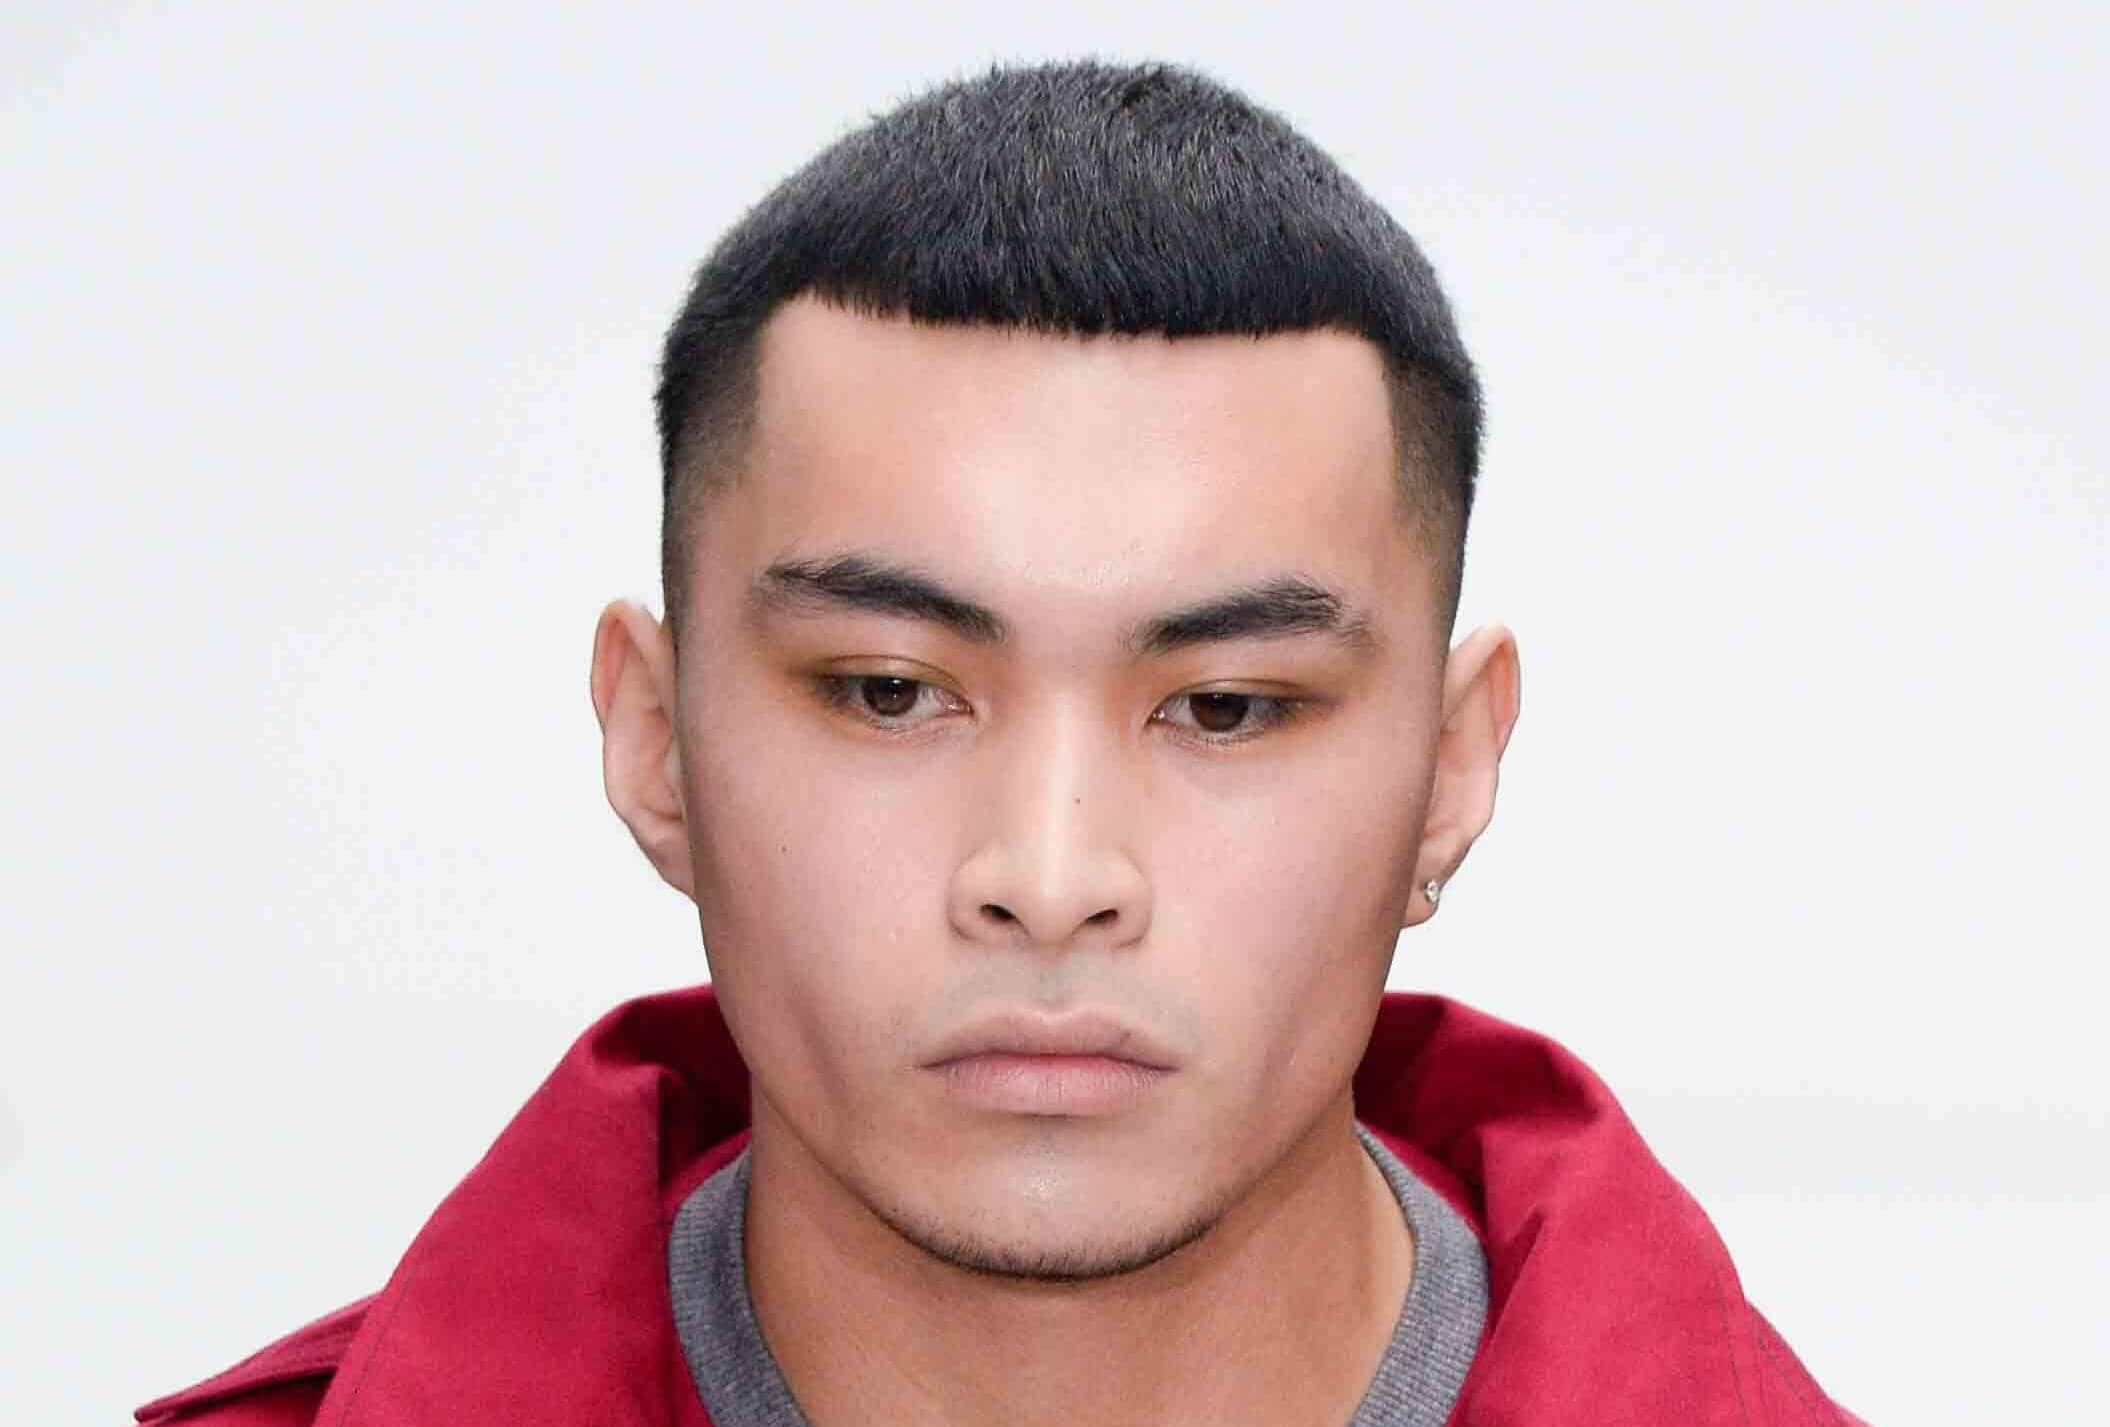 undercut fade hairstyle for men